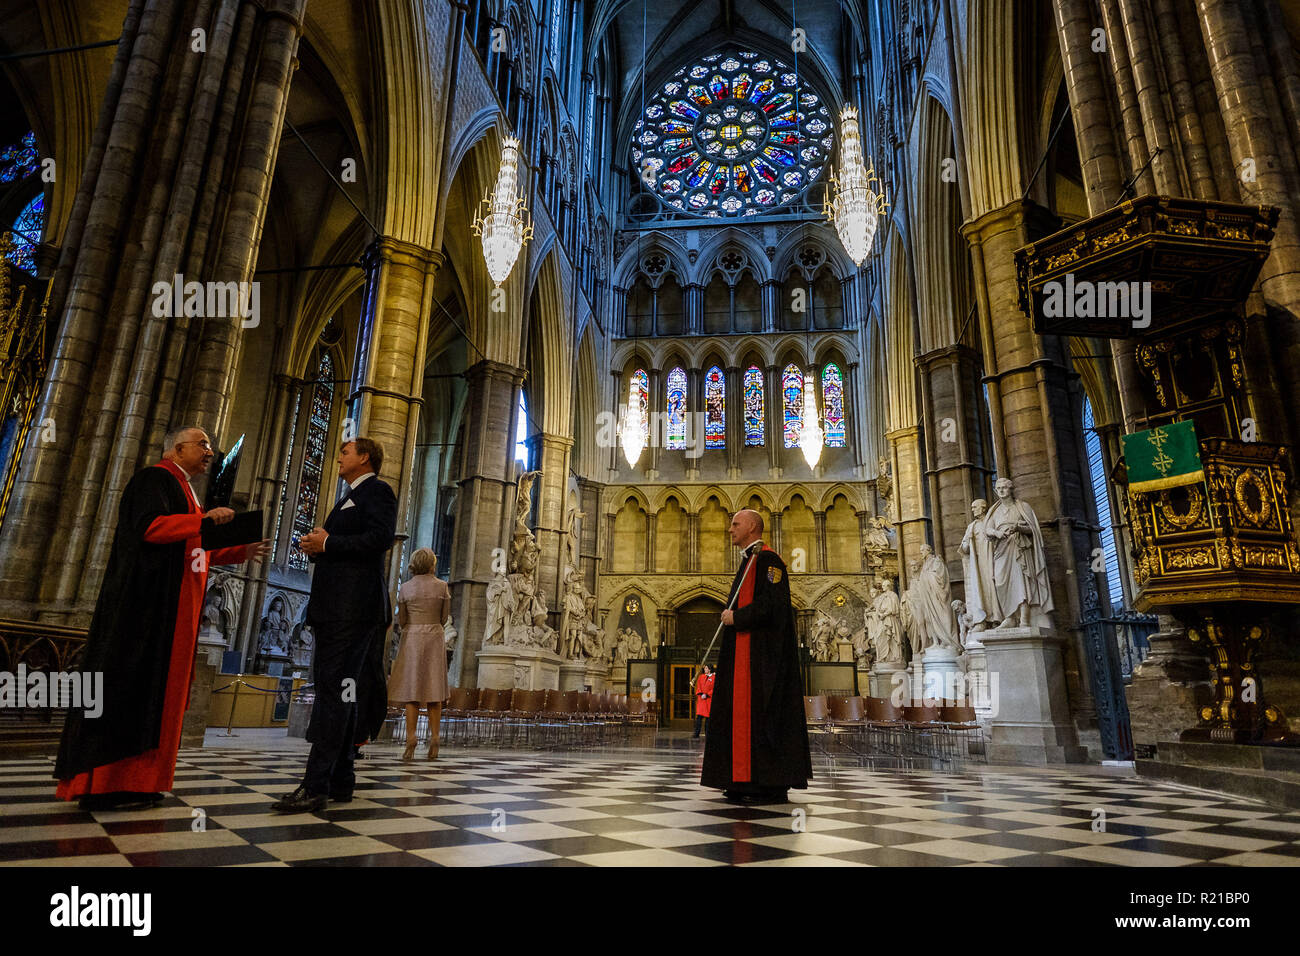 His Majesty King Willem-Alexander of the Netherlands, accompanied by Her Majesty Queen Maxima visit Westminster Abbey on Tuesday 23 October 2018 held at Westminster Abbey, London. Pictured: The King and Queen visit Westminster Abbey, where they laid a wreath at the Grave of the Unknown Warrior as prayers were said by the Dean. They were then taken on a short tour of the Abbey, which will included visiting the resting place of William and Mary. . - Stock Image